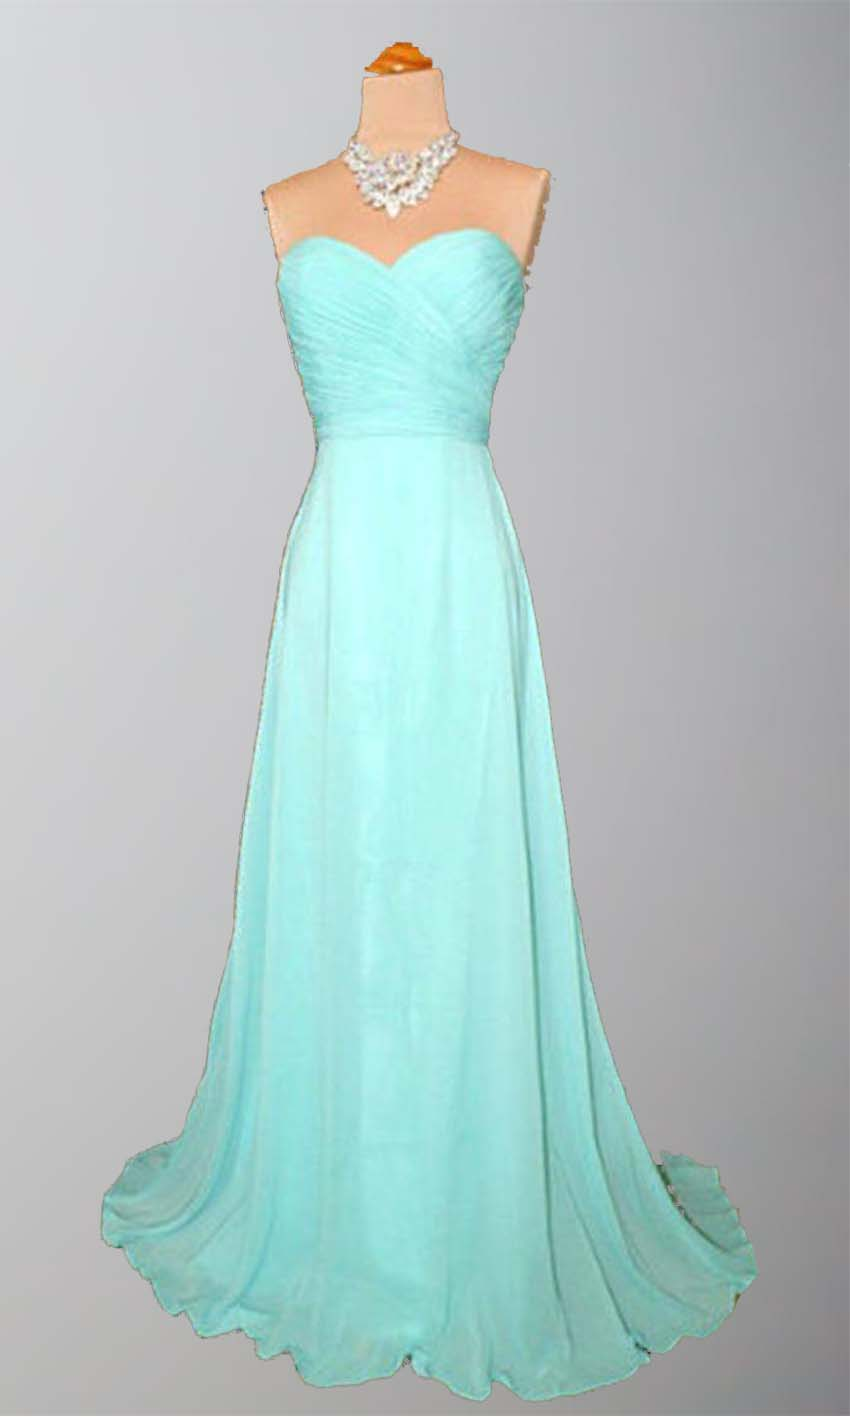 Fashionable Nipped Waist Lace Up Prom Dresses KSP173 [KSP173] - £85.00 : Cheap Prom Dresses Uk, Bridesmaid Dresses, 2014 Prom & Evening Dresses, Look for cheap elegant prom dresses 2014, cocktail gowns, or dresses for special occasions? kissprom.co.uk offers various bridesmaid dresses, evening dress, free shipping to UK etc.